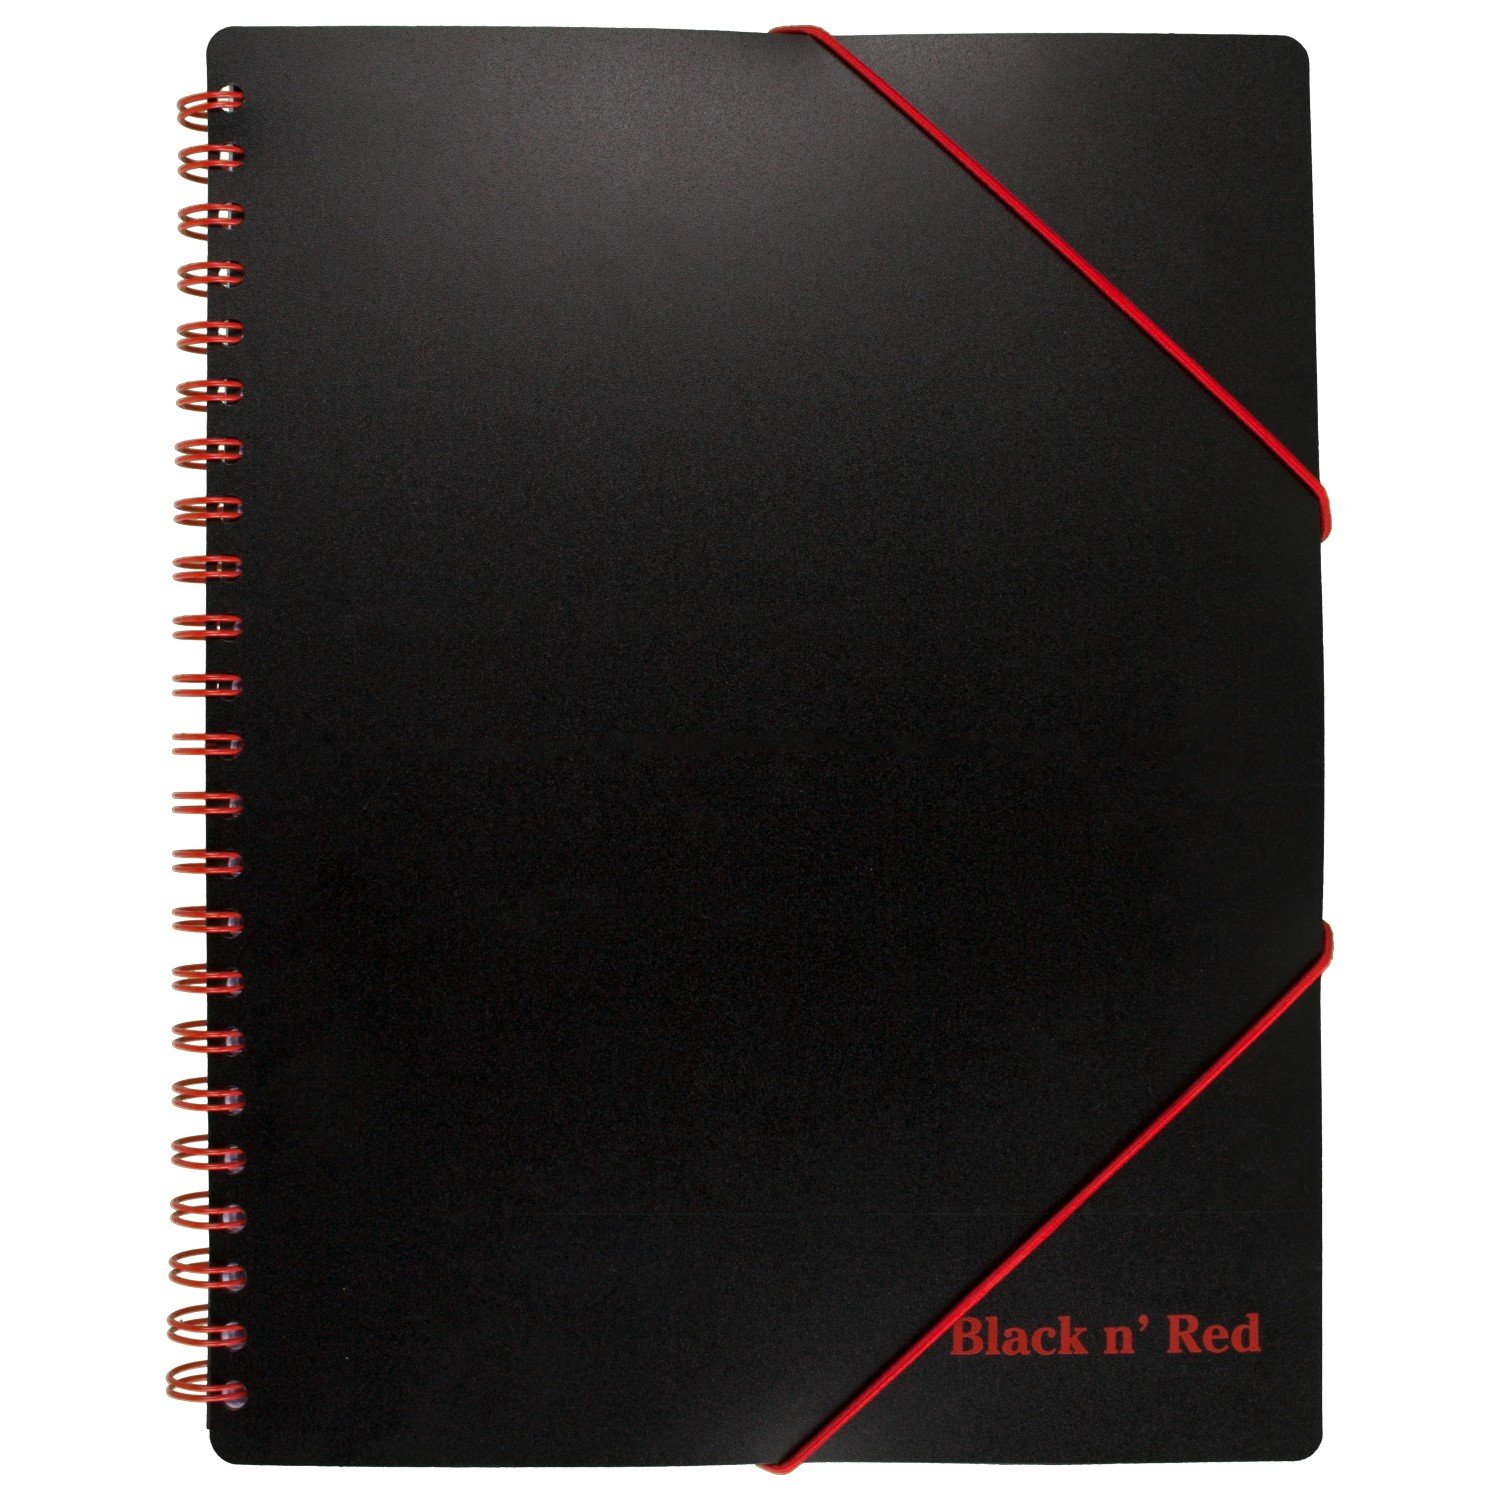 Black n' Red Filing Notebook, Poly Cover, Twinwire, 8-1/4 x 11-5/8 inches, Black, Ruled, 80 Sheets (400077473)